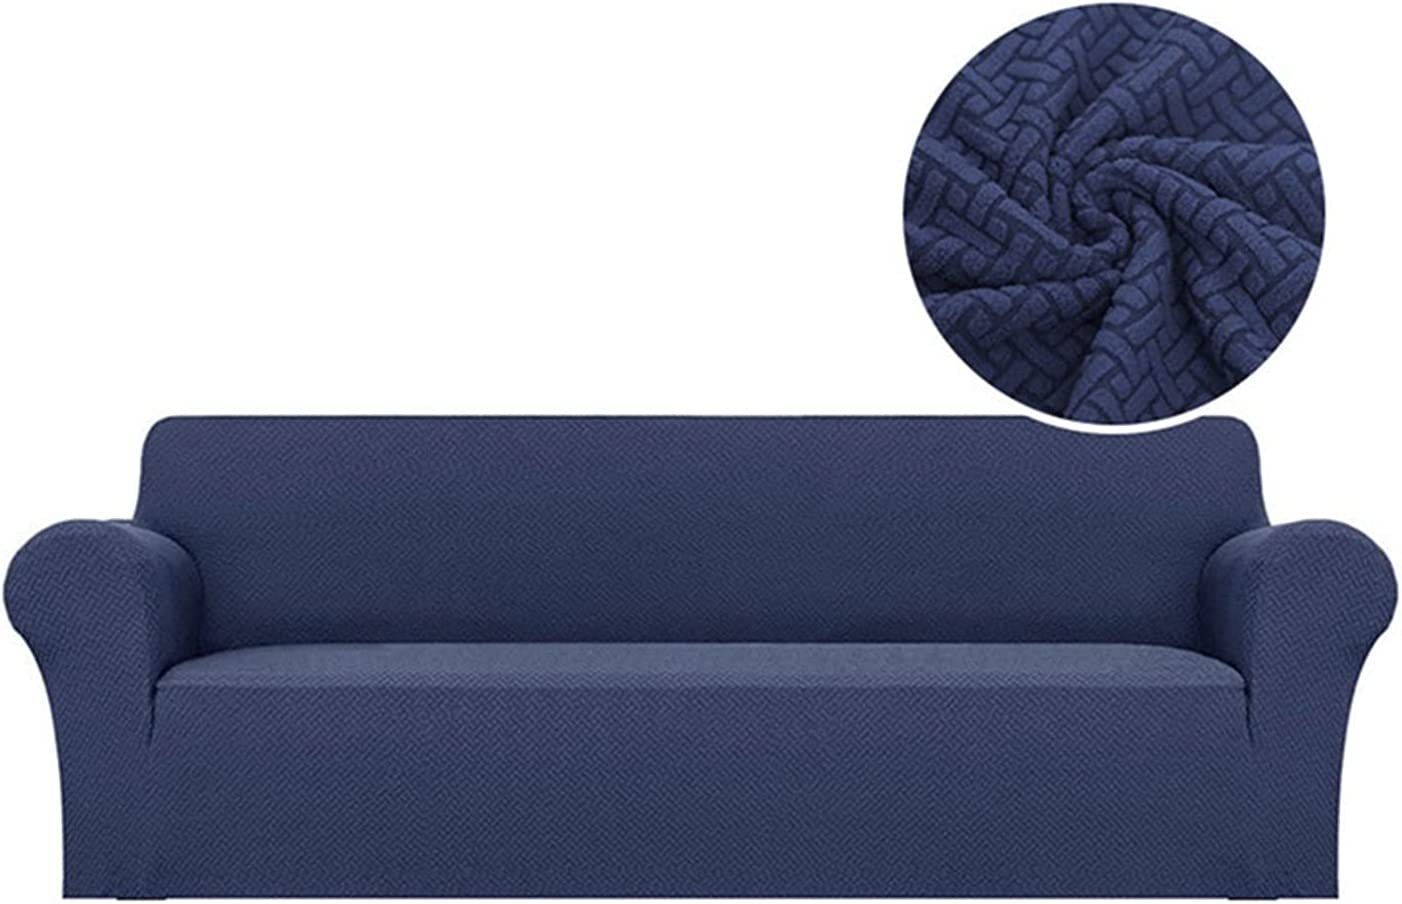 XUELINGTANG Jacquard Stretch Sofa Cover Elastic for Living Max 61% OFF Limited time trial price Room